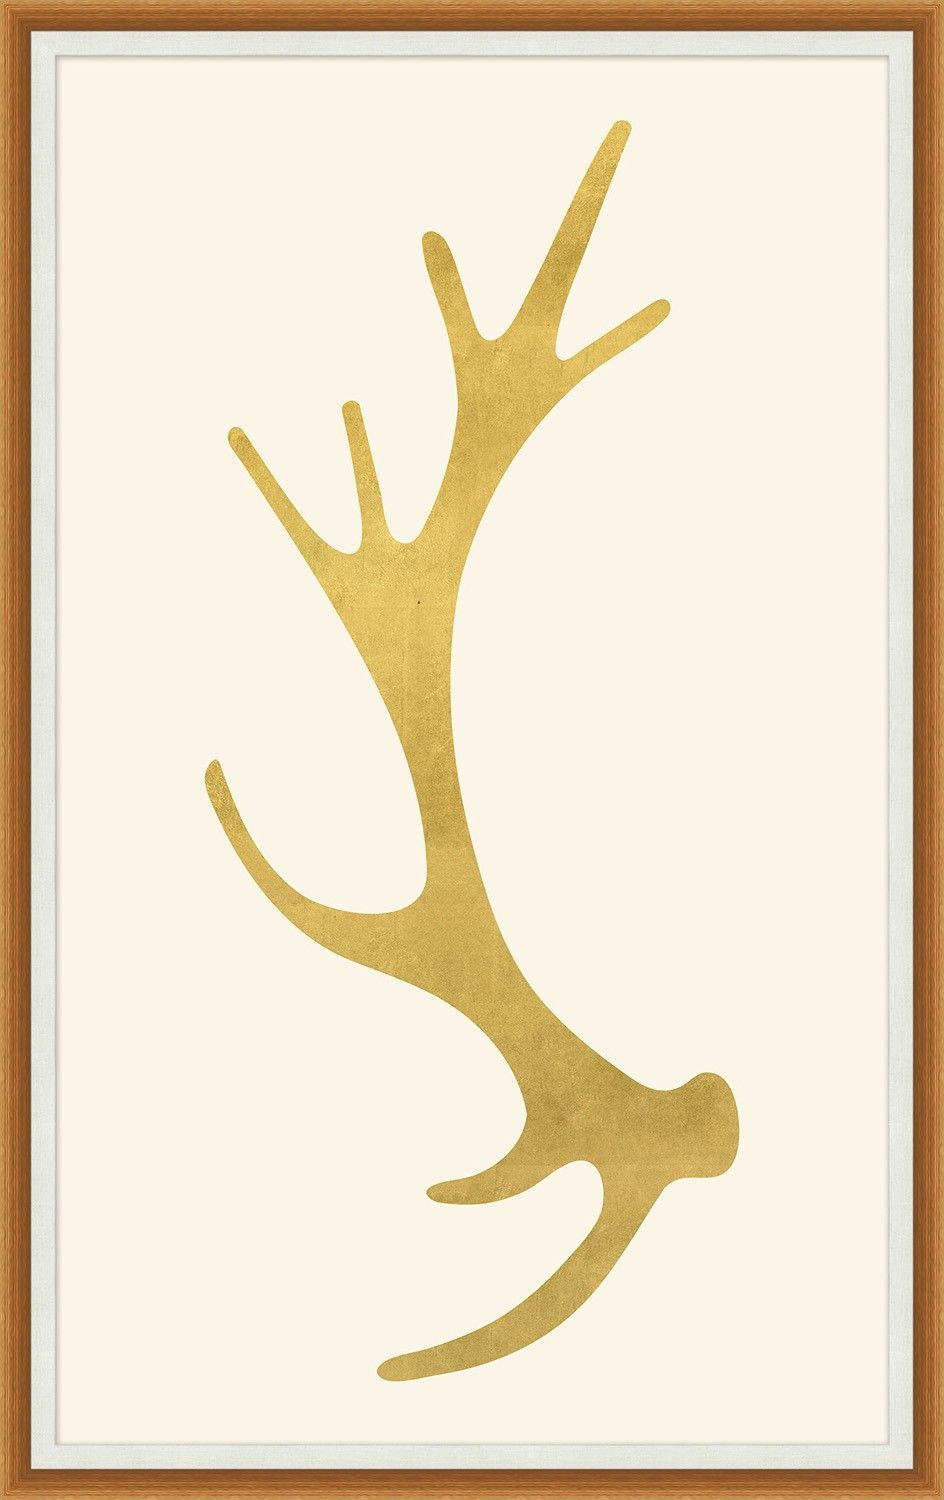 WAN1010 Gold Antler 1 - Animals - Our Product 33.75 x 53.75 $847.50 ...